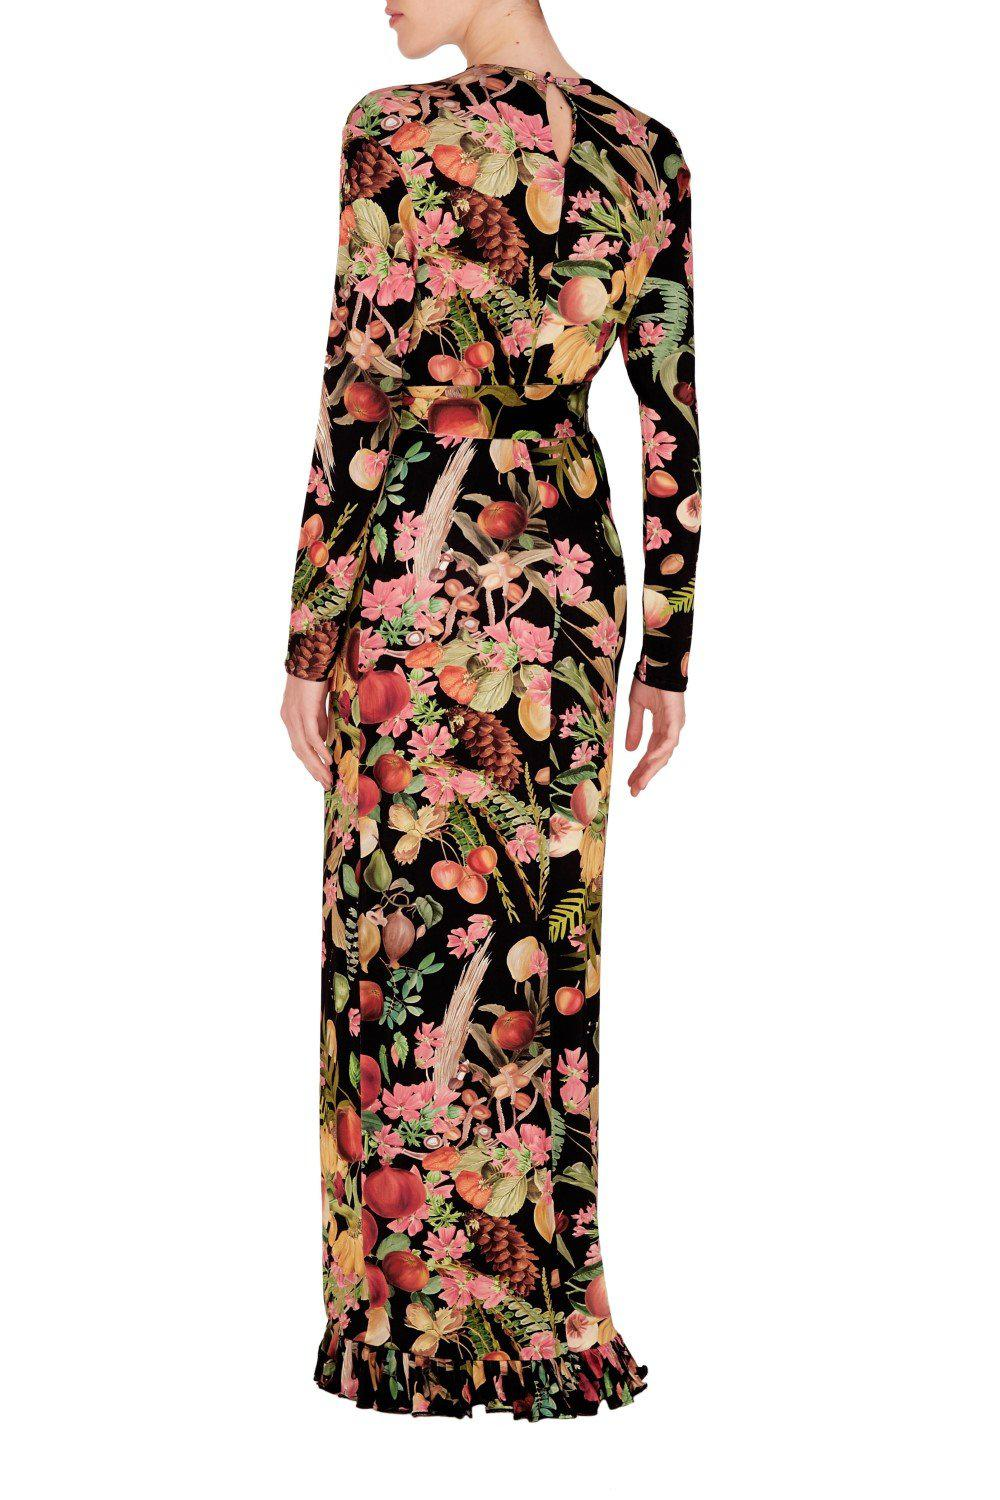 Fruits Exotiques Long Dress with Frills 1